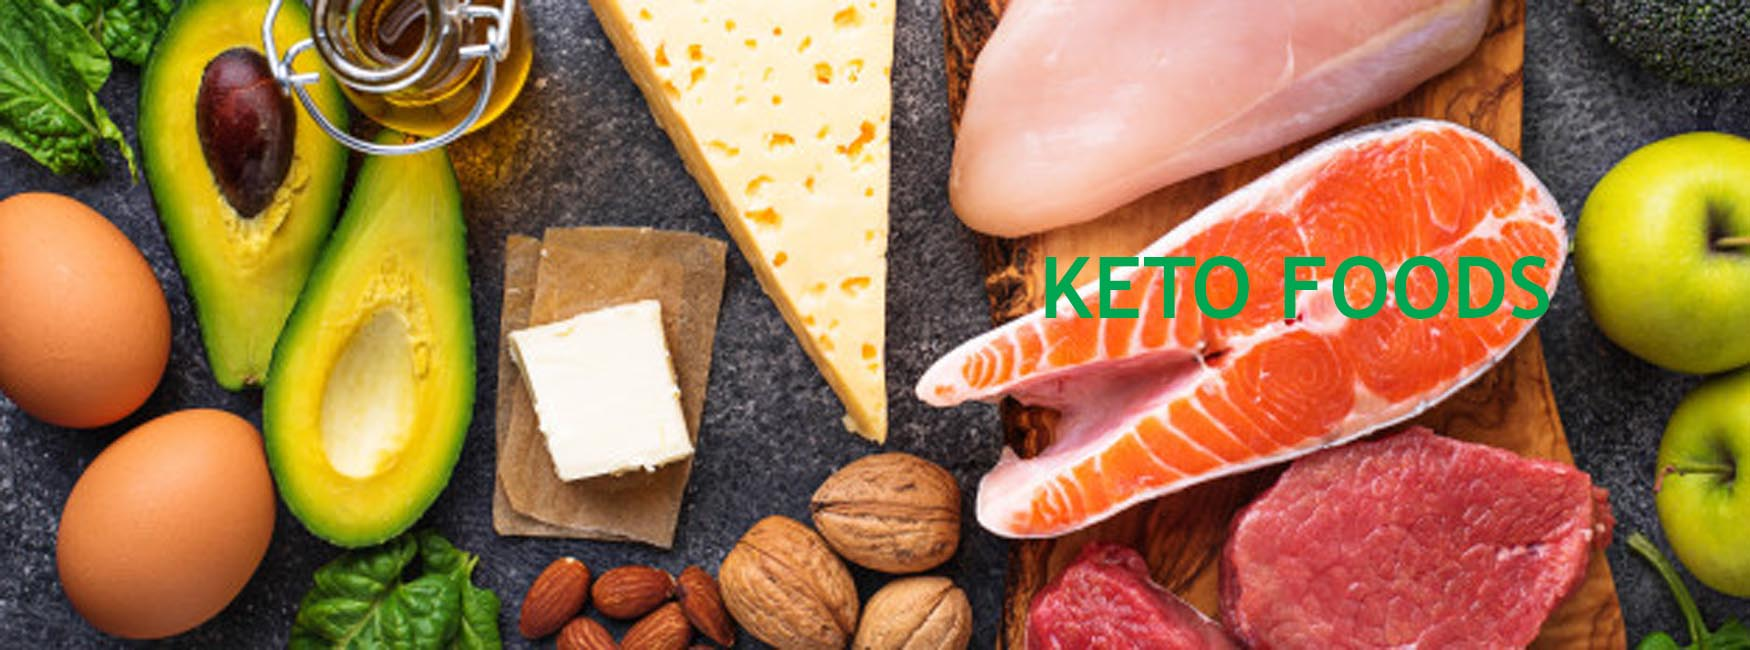 The Keto diet is a popular low carb-high fat diet.